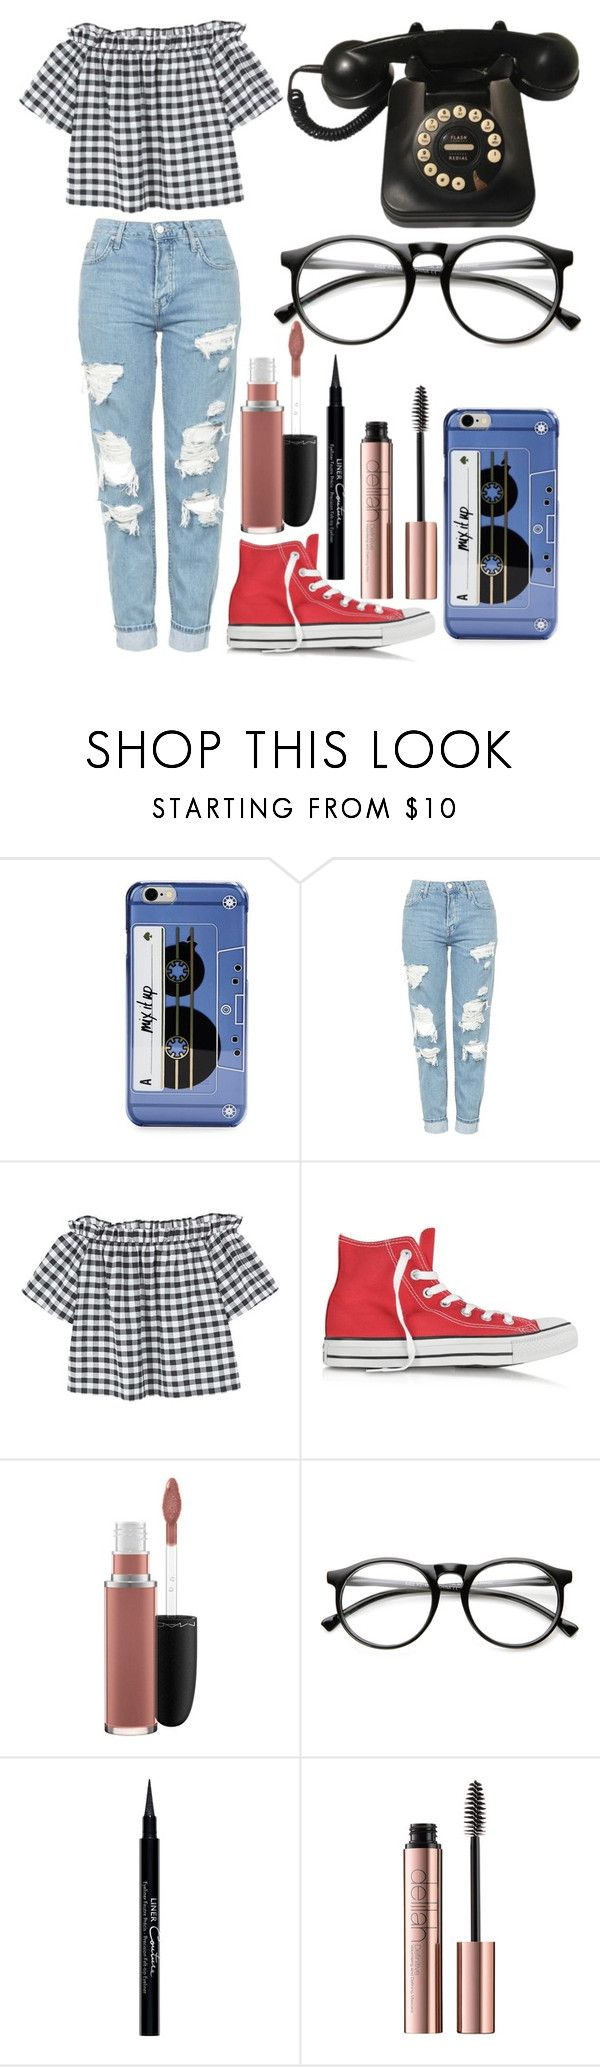 """Untitled #61"" by sofi-the-first1912 on Polyvore featuring Kate Spade, Topshop, MANGO, Converse, MAC Cosmetics and Givenchy"